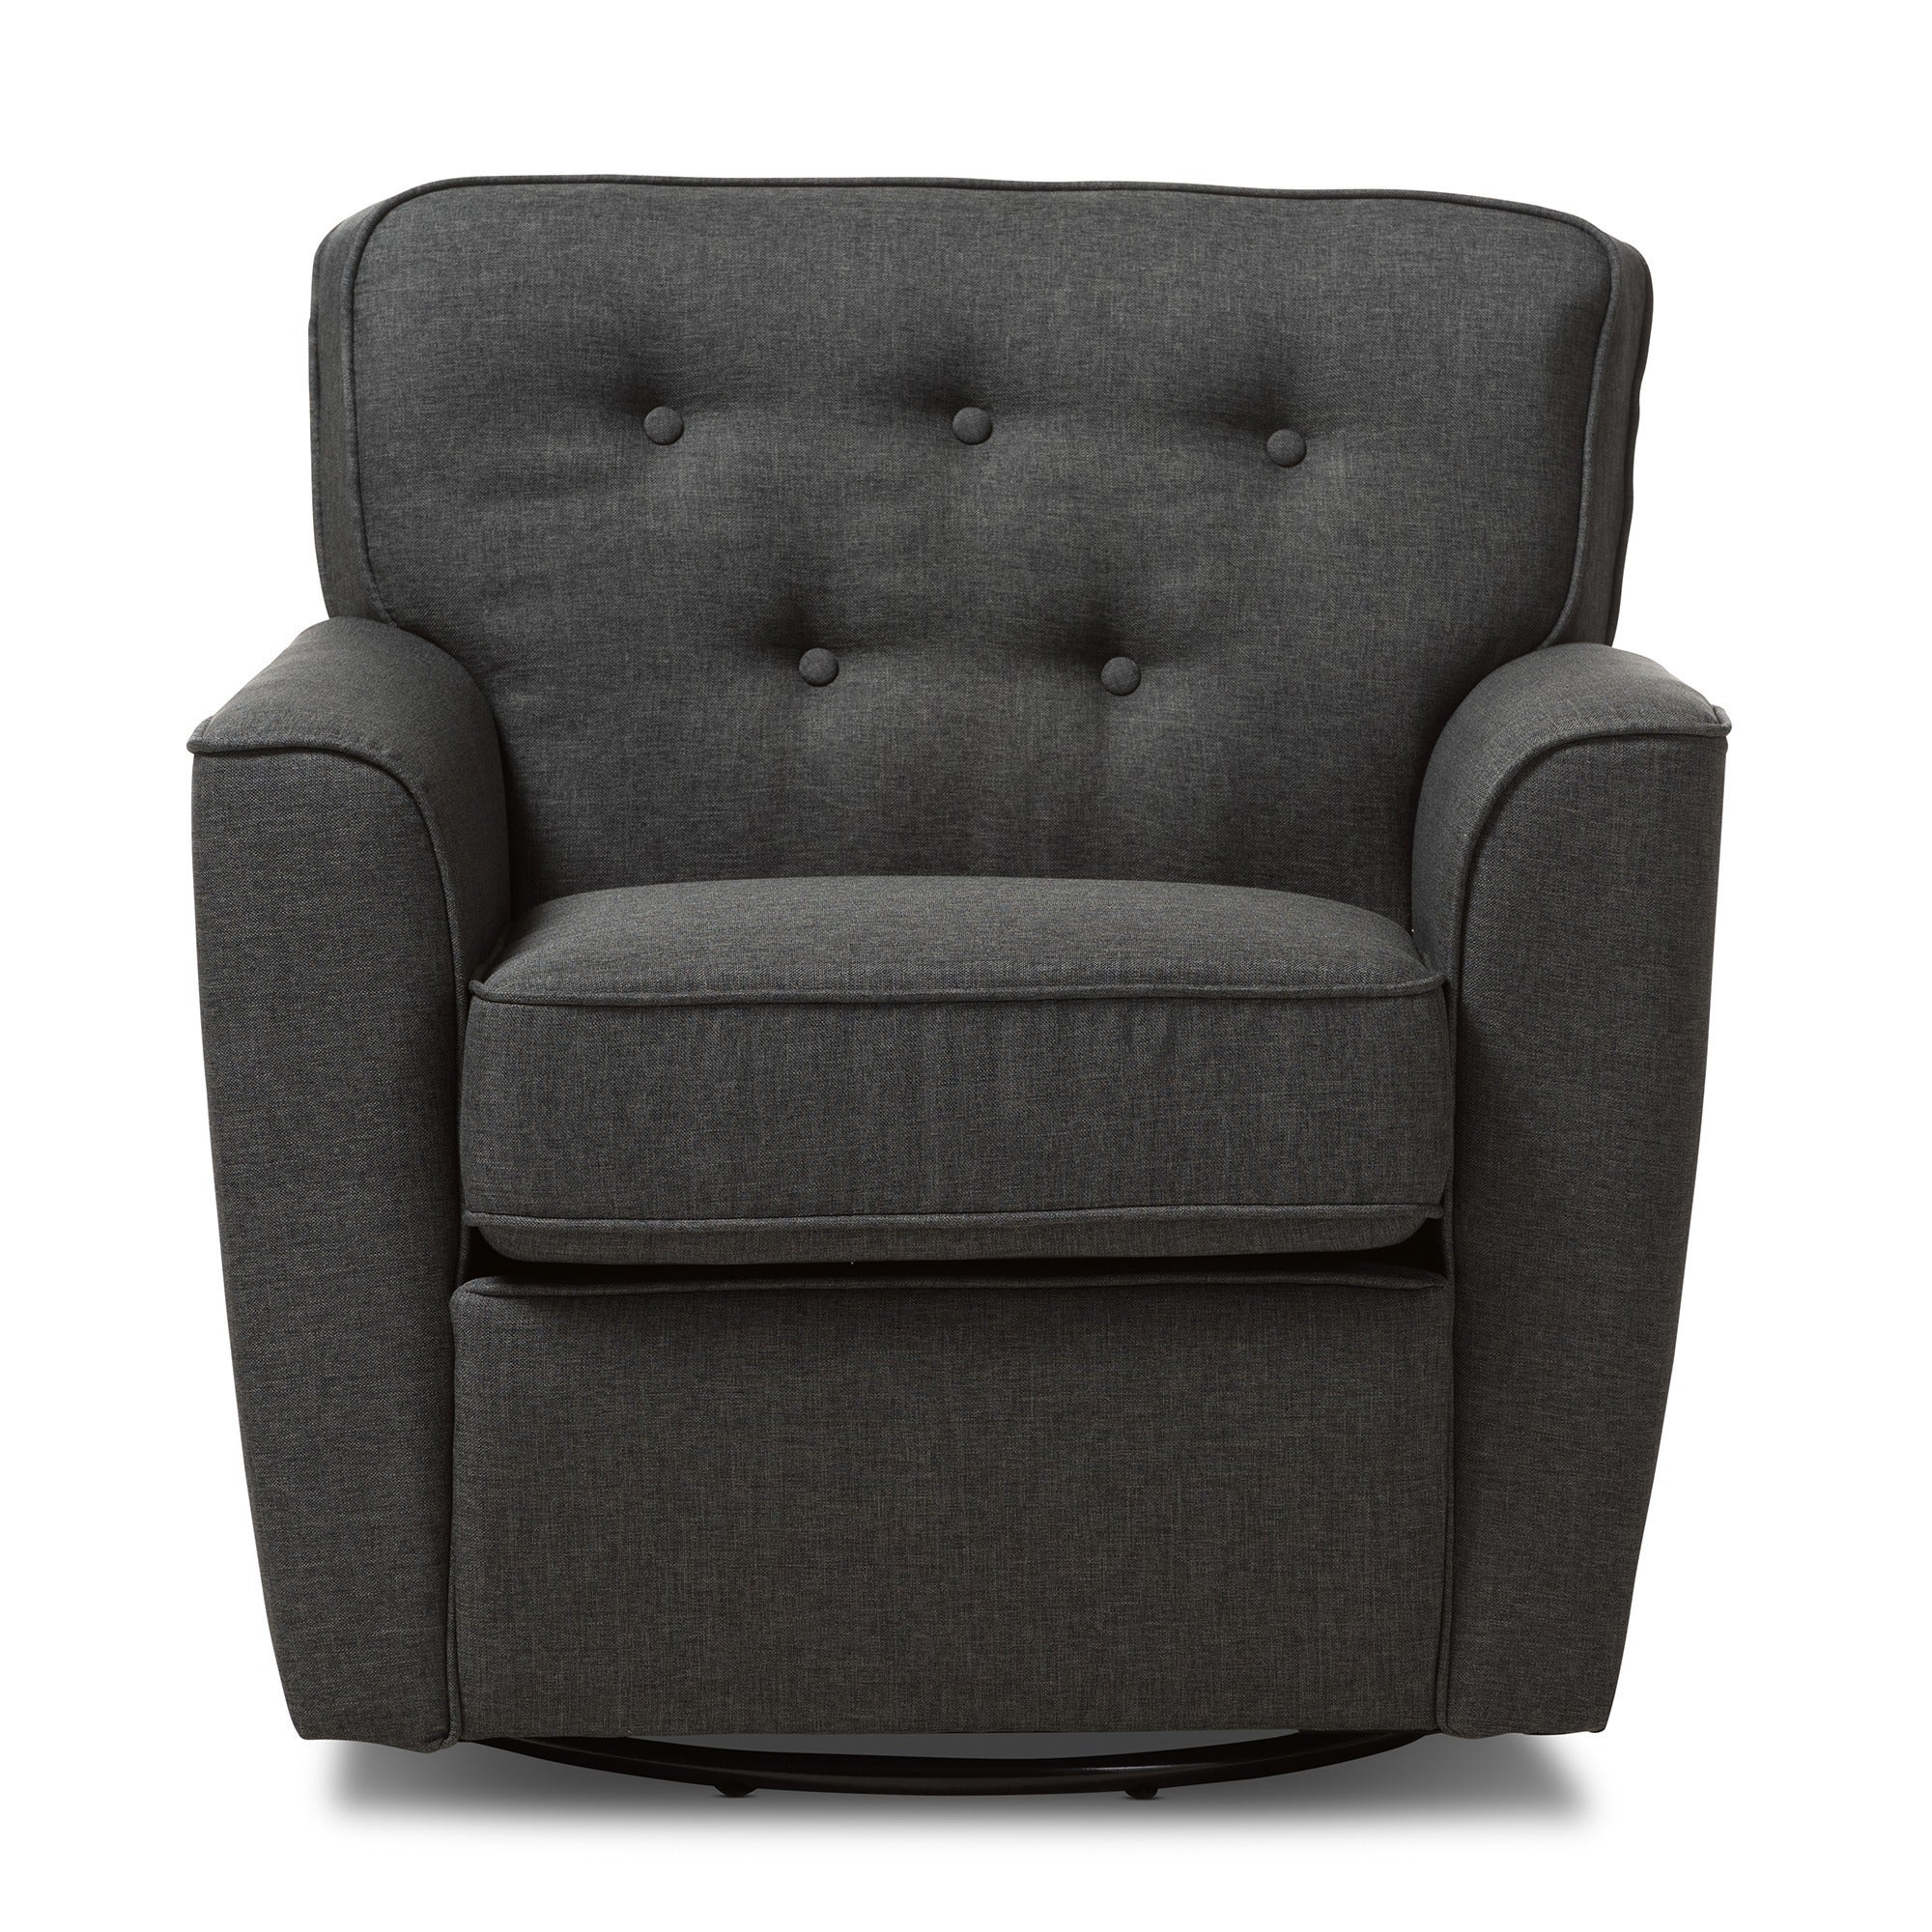 Shop Baxton Studio Canberra Contemporary Grey Tufted Swivel Armchair   Free  Shipping Today   Overstock.com   10305558